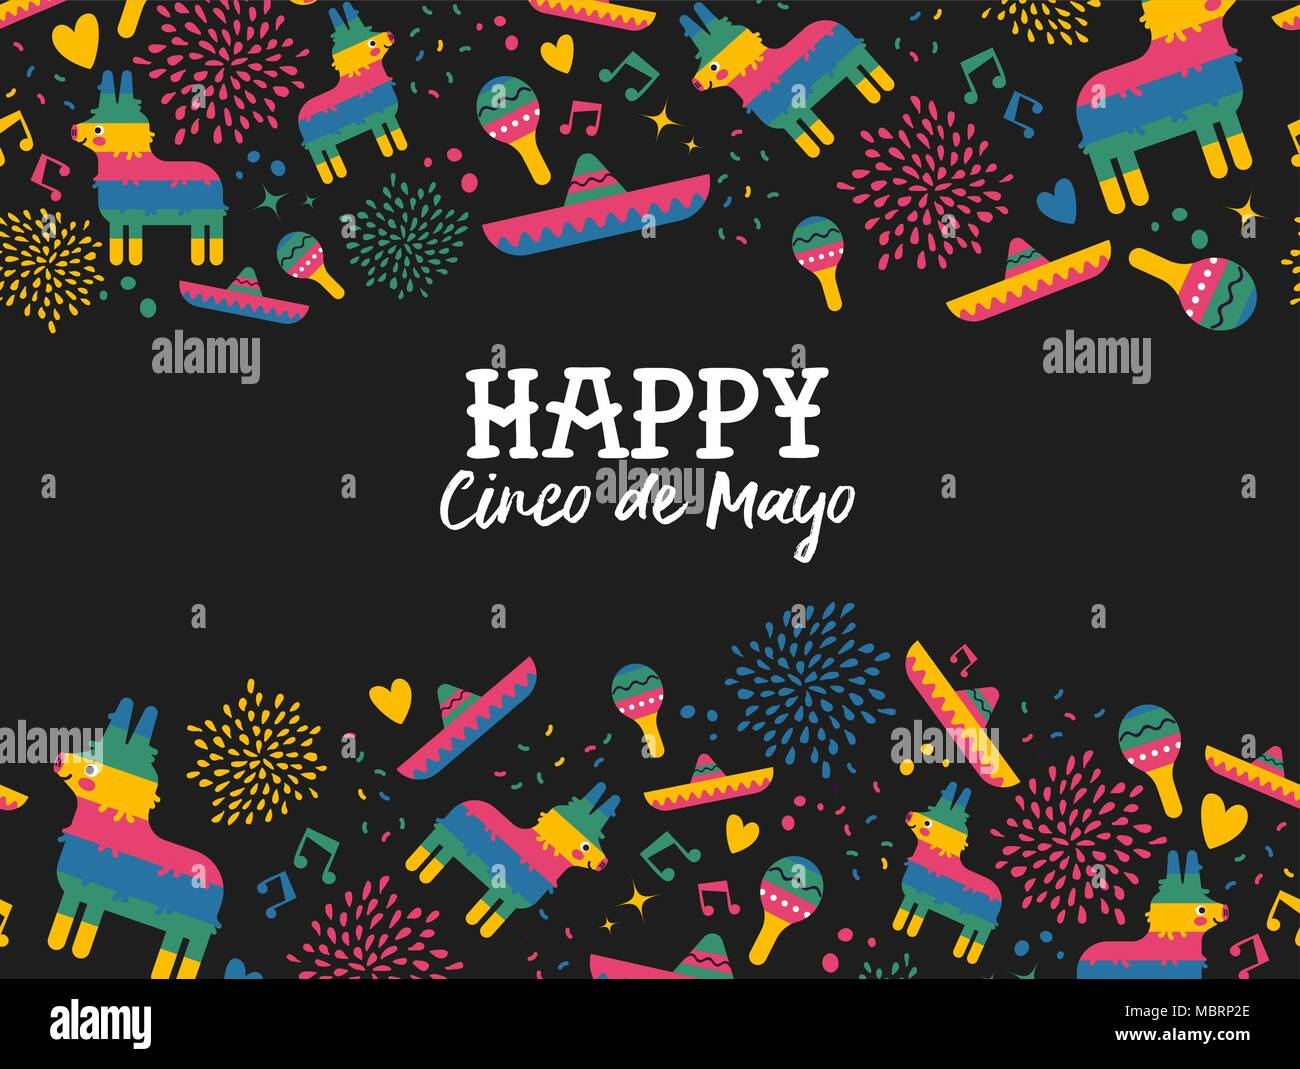 happy cinco de mayo greeting card illustration with pattern